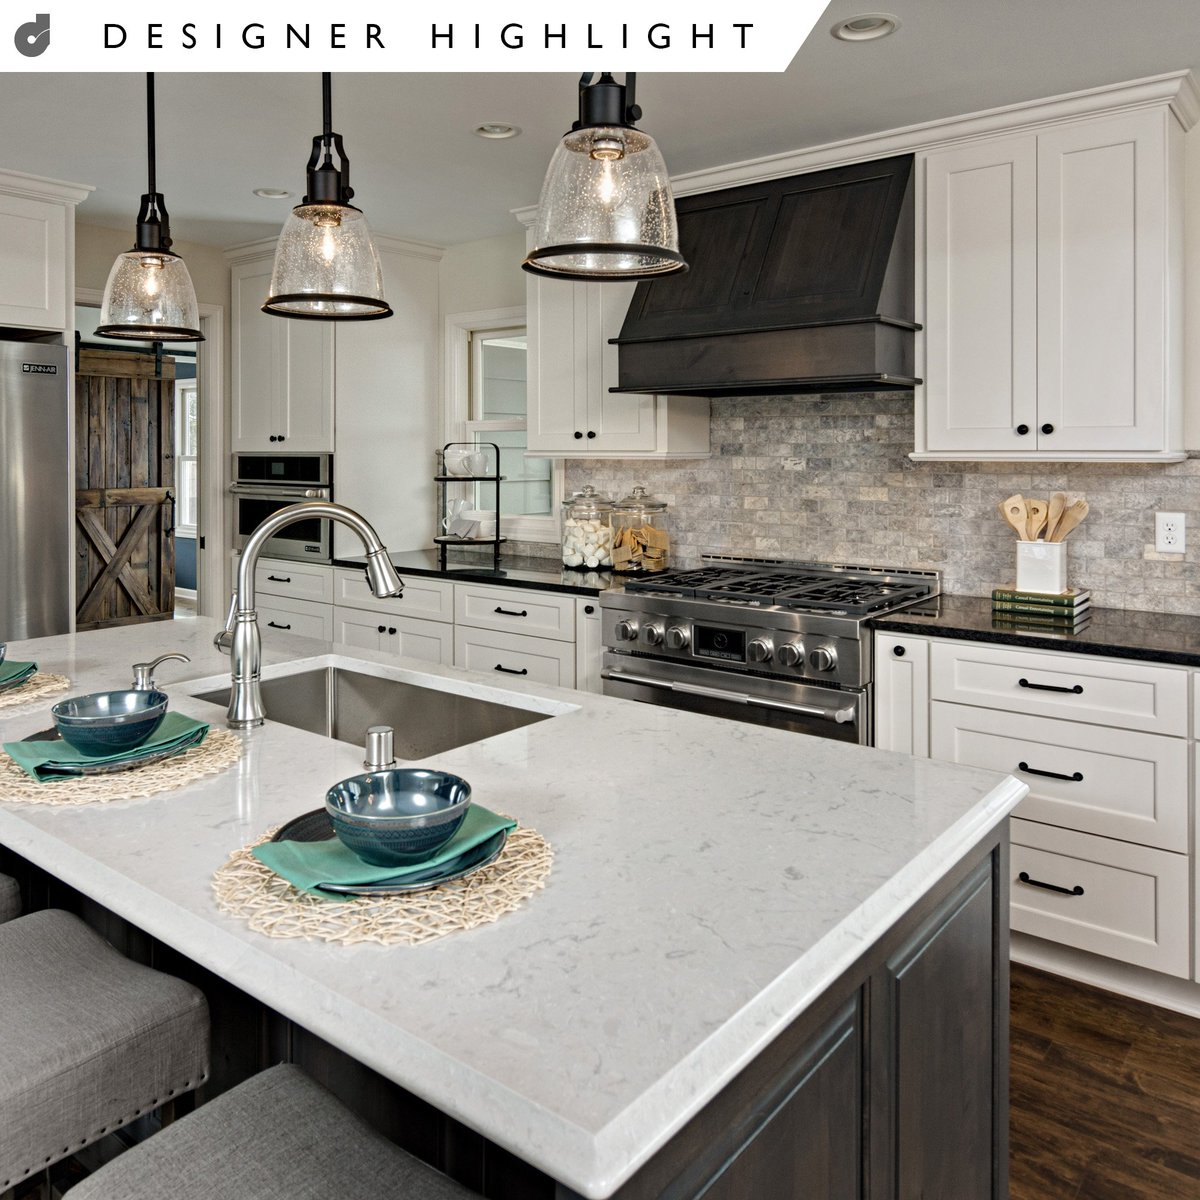 Dura Supreme Cabinetry On Twitter Designer Highlight This